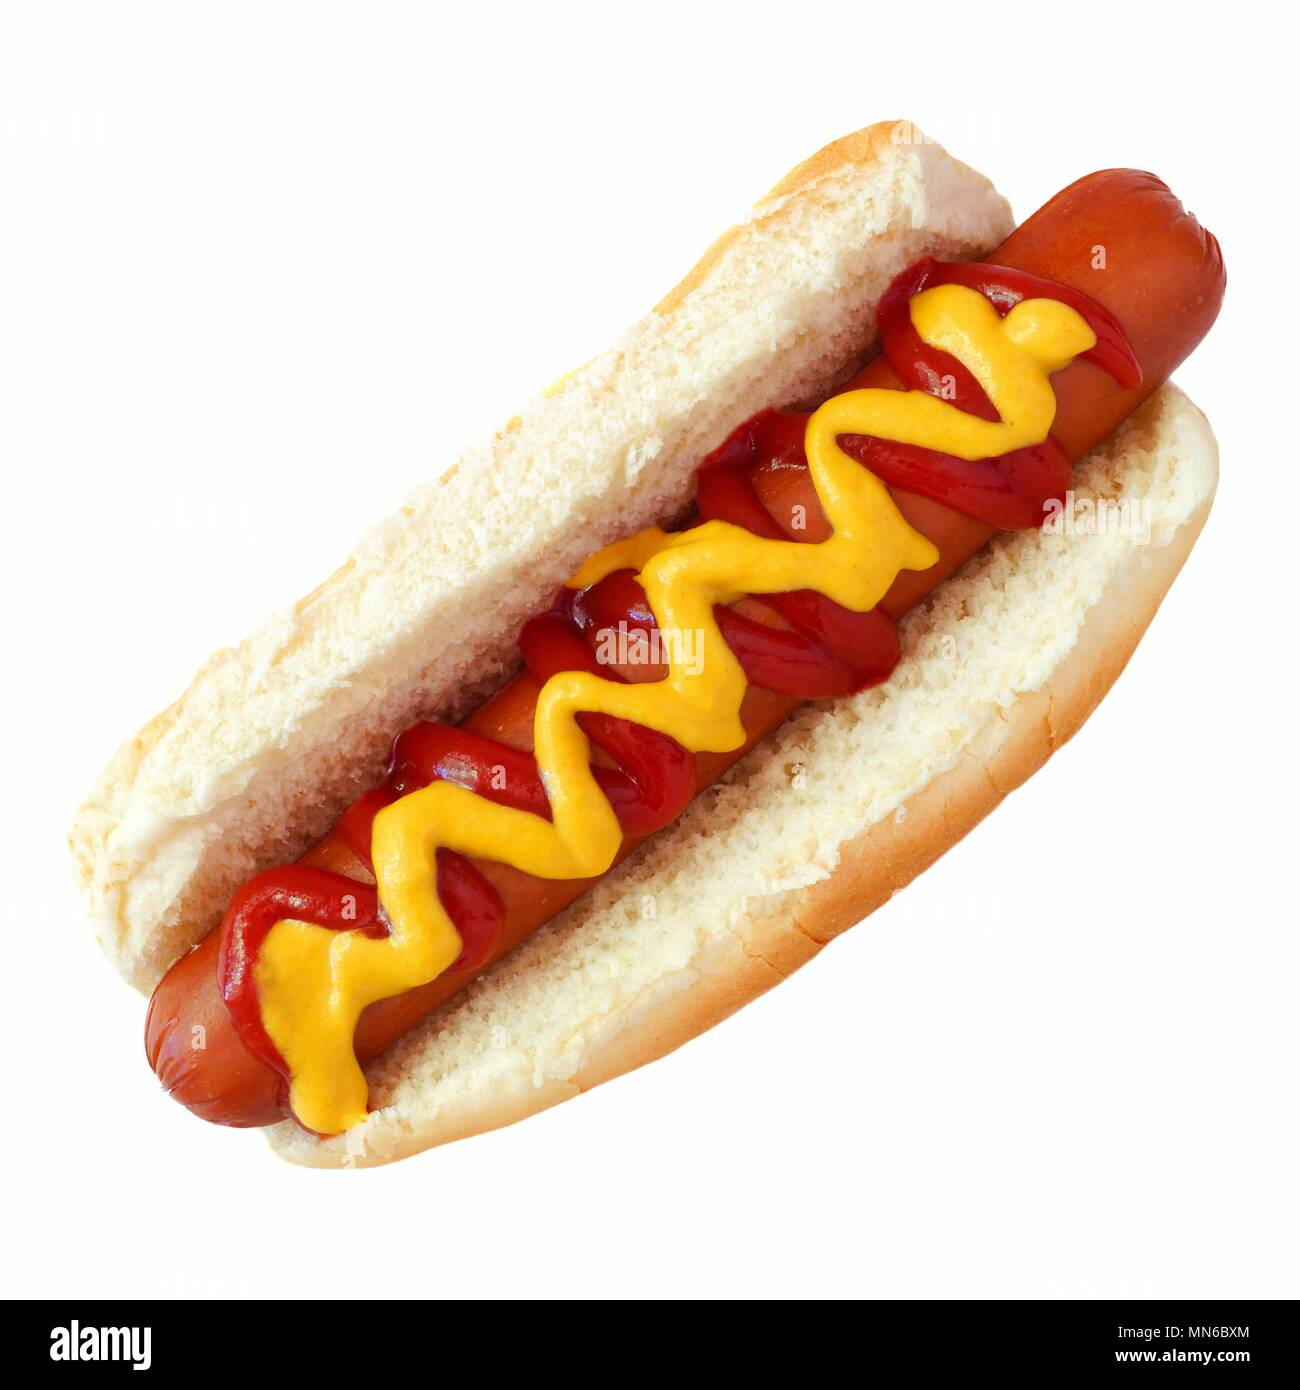 Hot dog with mustard and ketchup, top view isolated on a white background - Stock Image